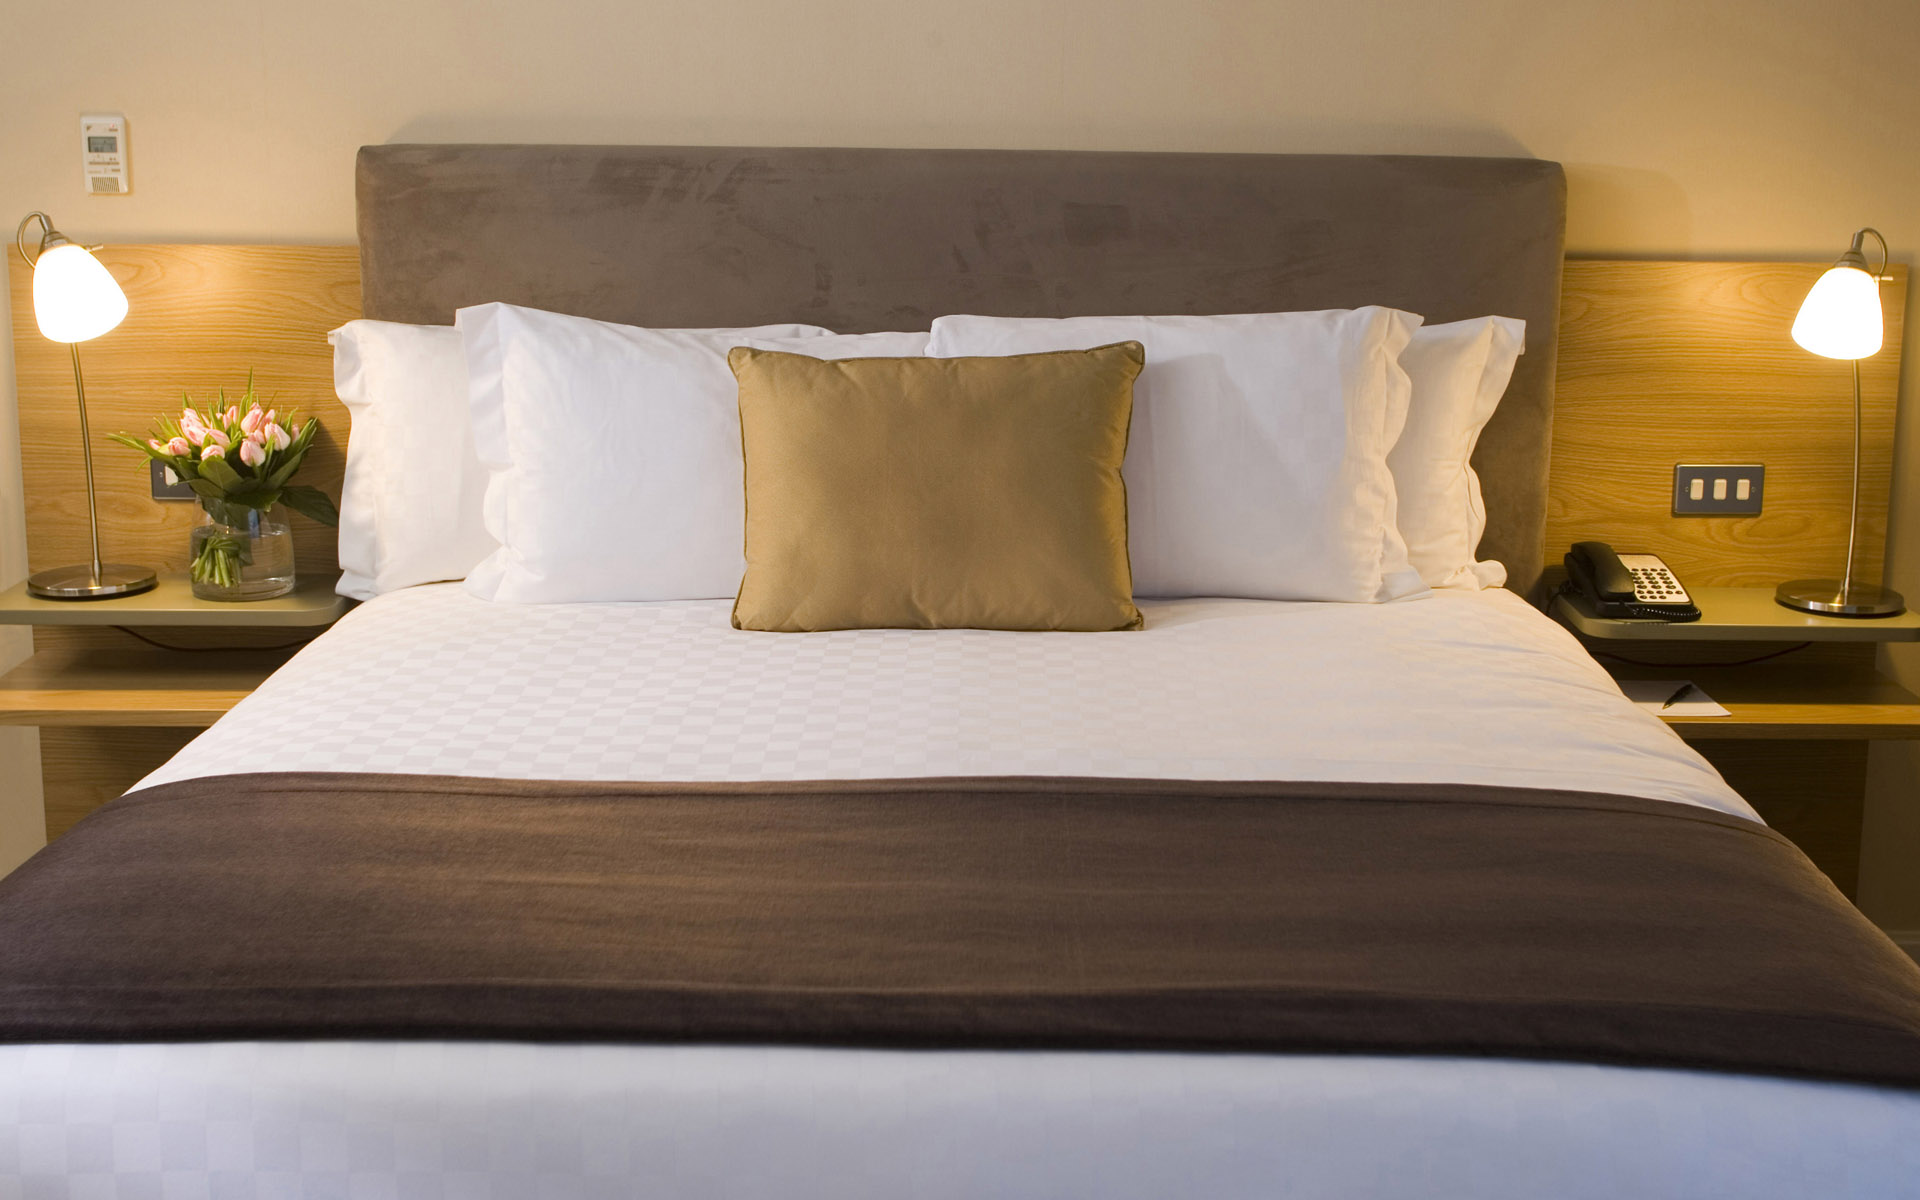 Hd Home Bed Pictures : HD Photo bedroom 22155 - Indoor Home - Still Life. Download HD Photo ...